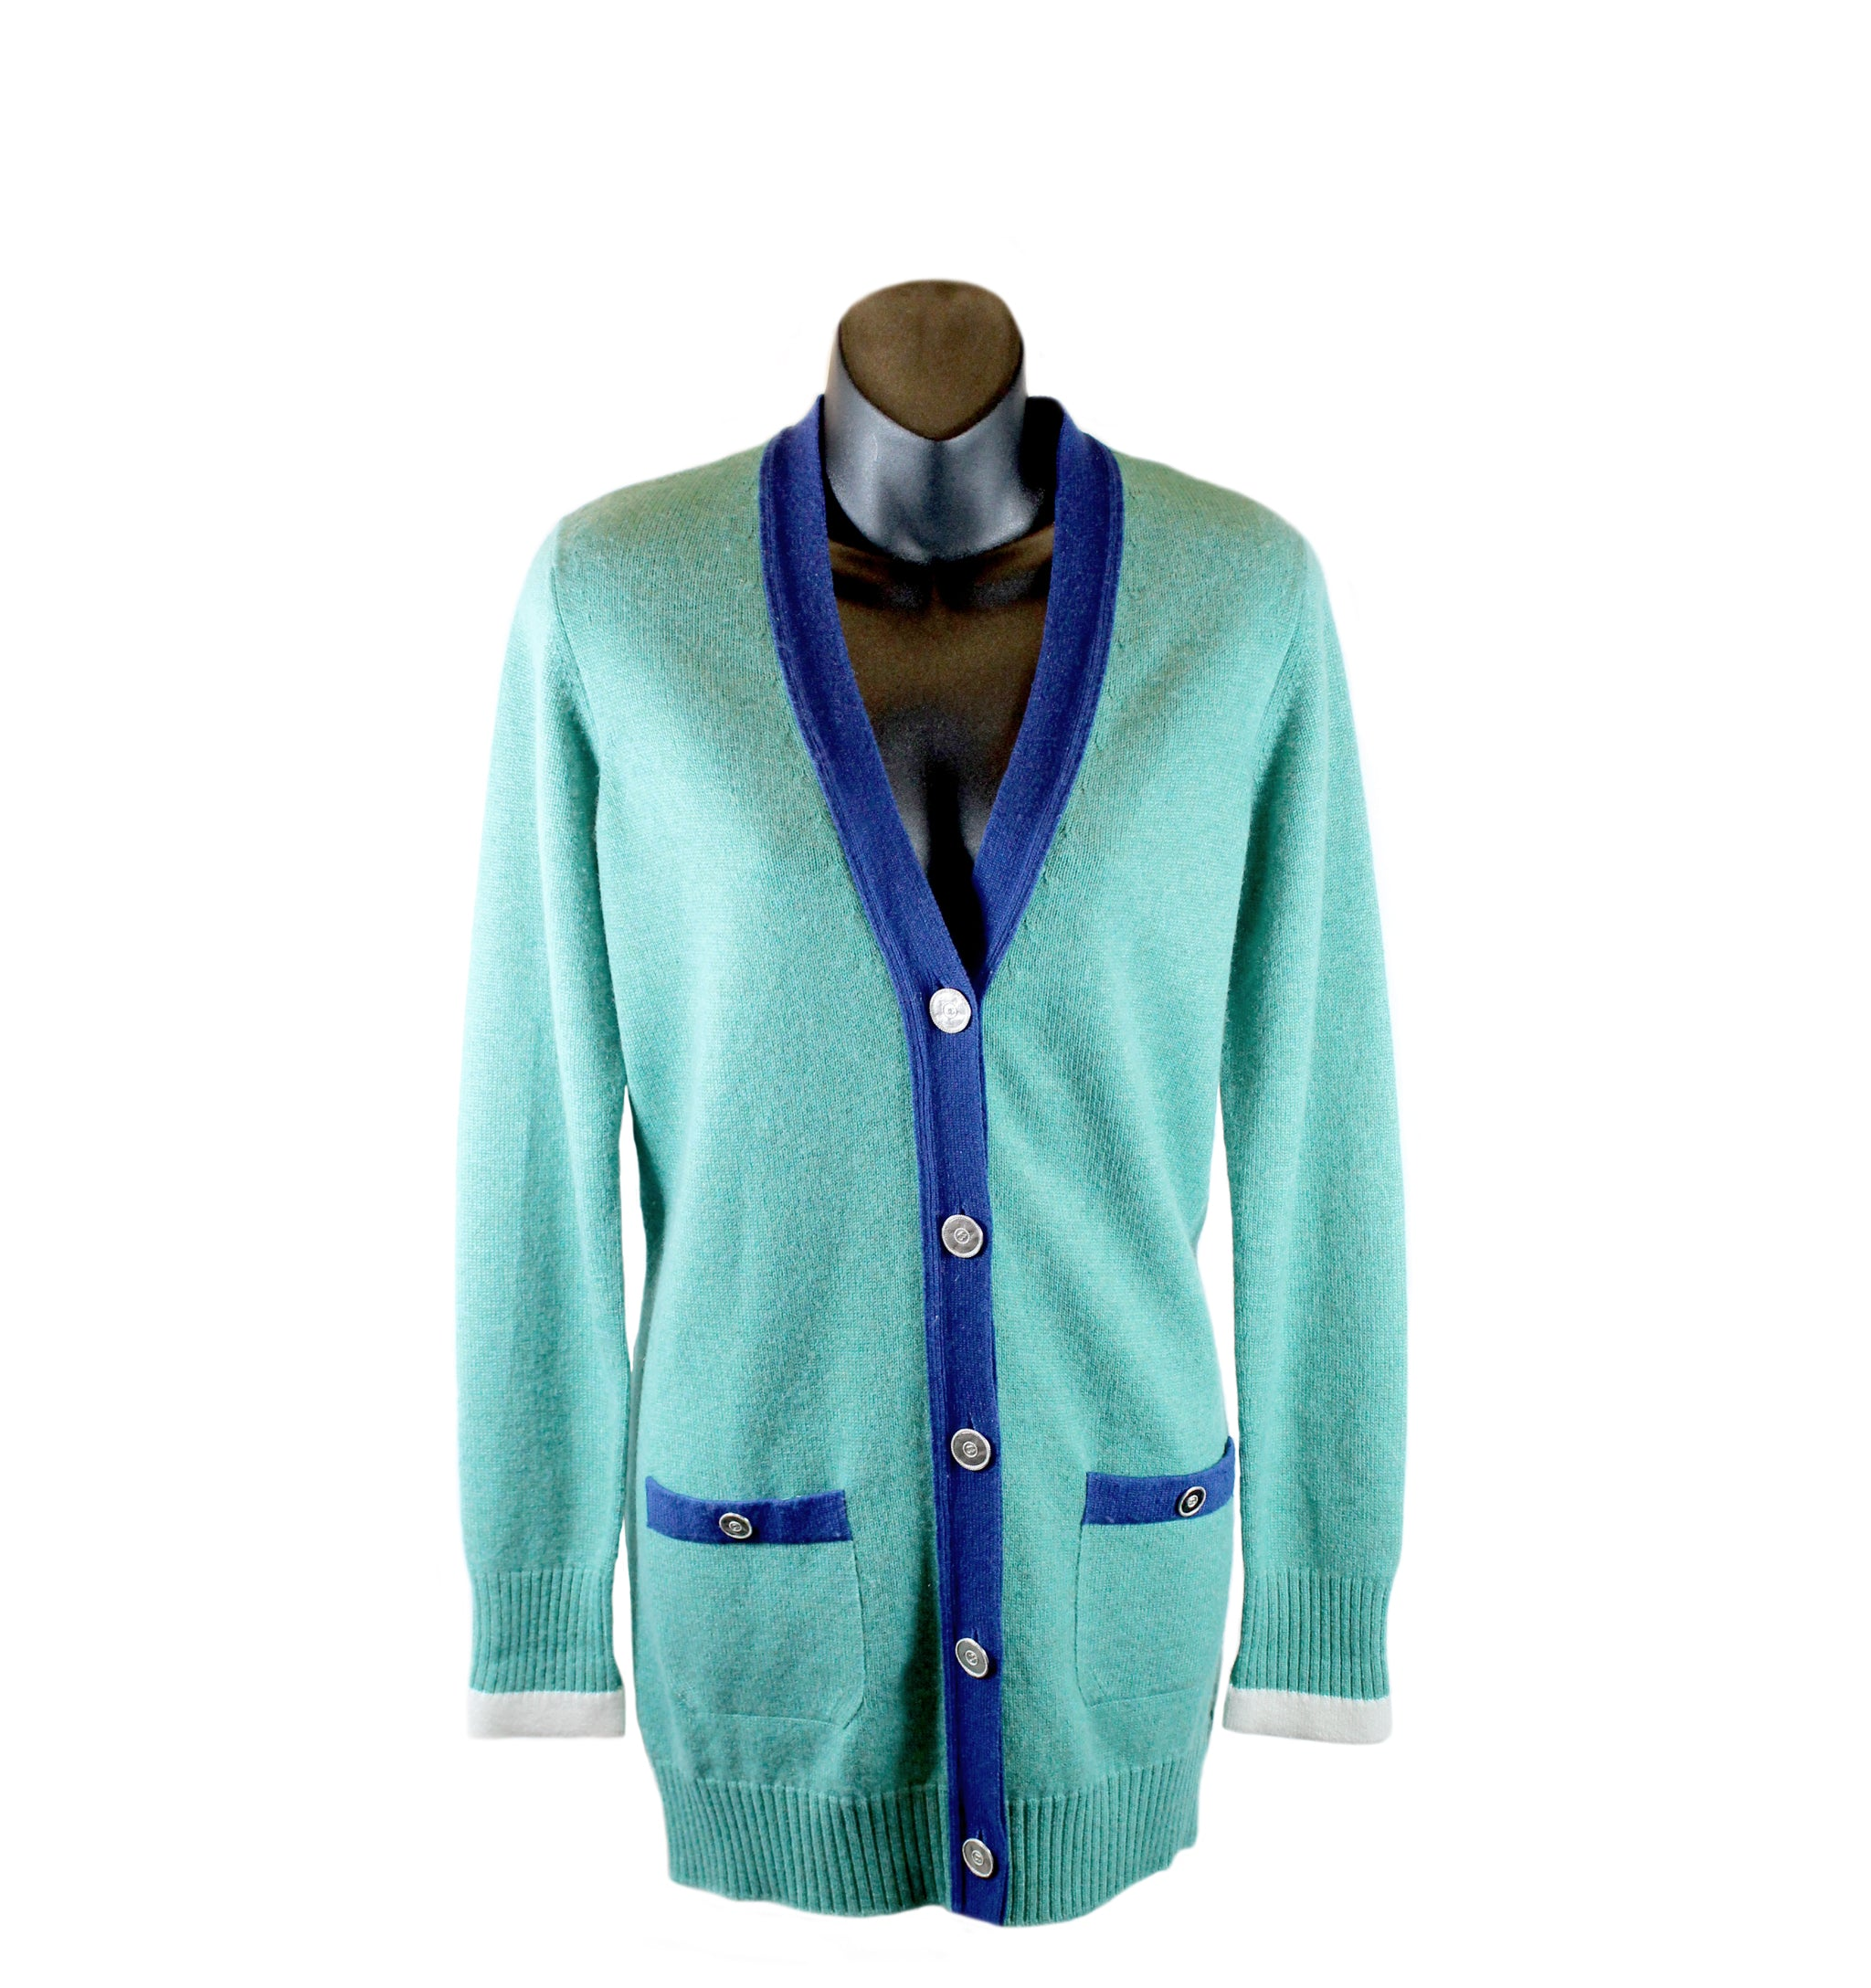 Chanel Teal Cashmere Button-Up Cardigan (Size 36)